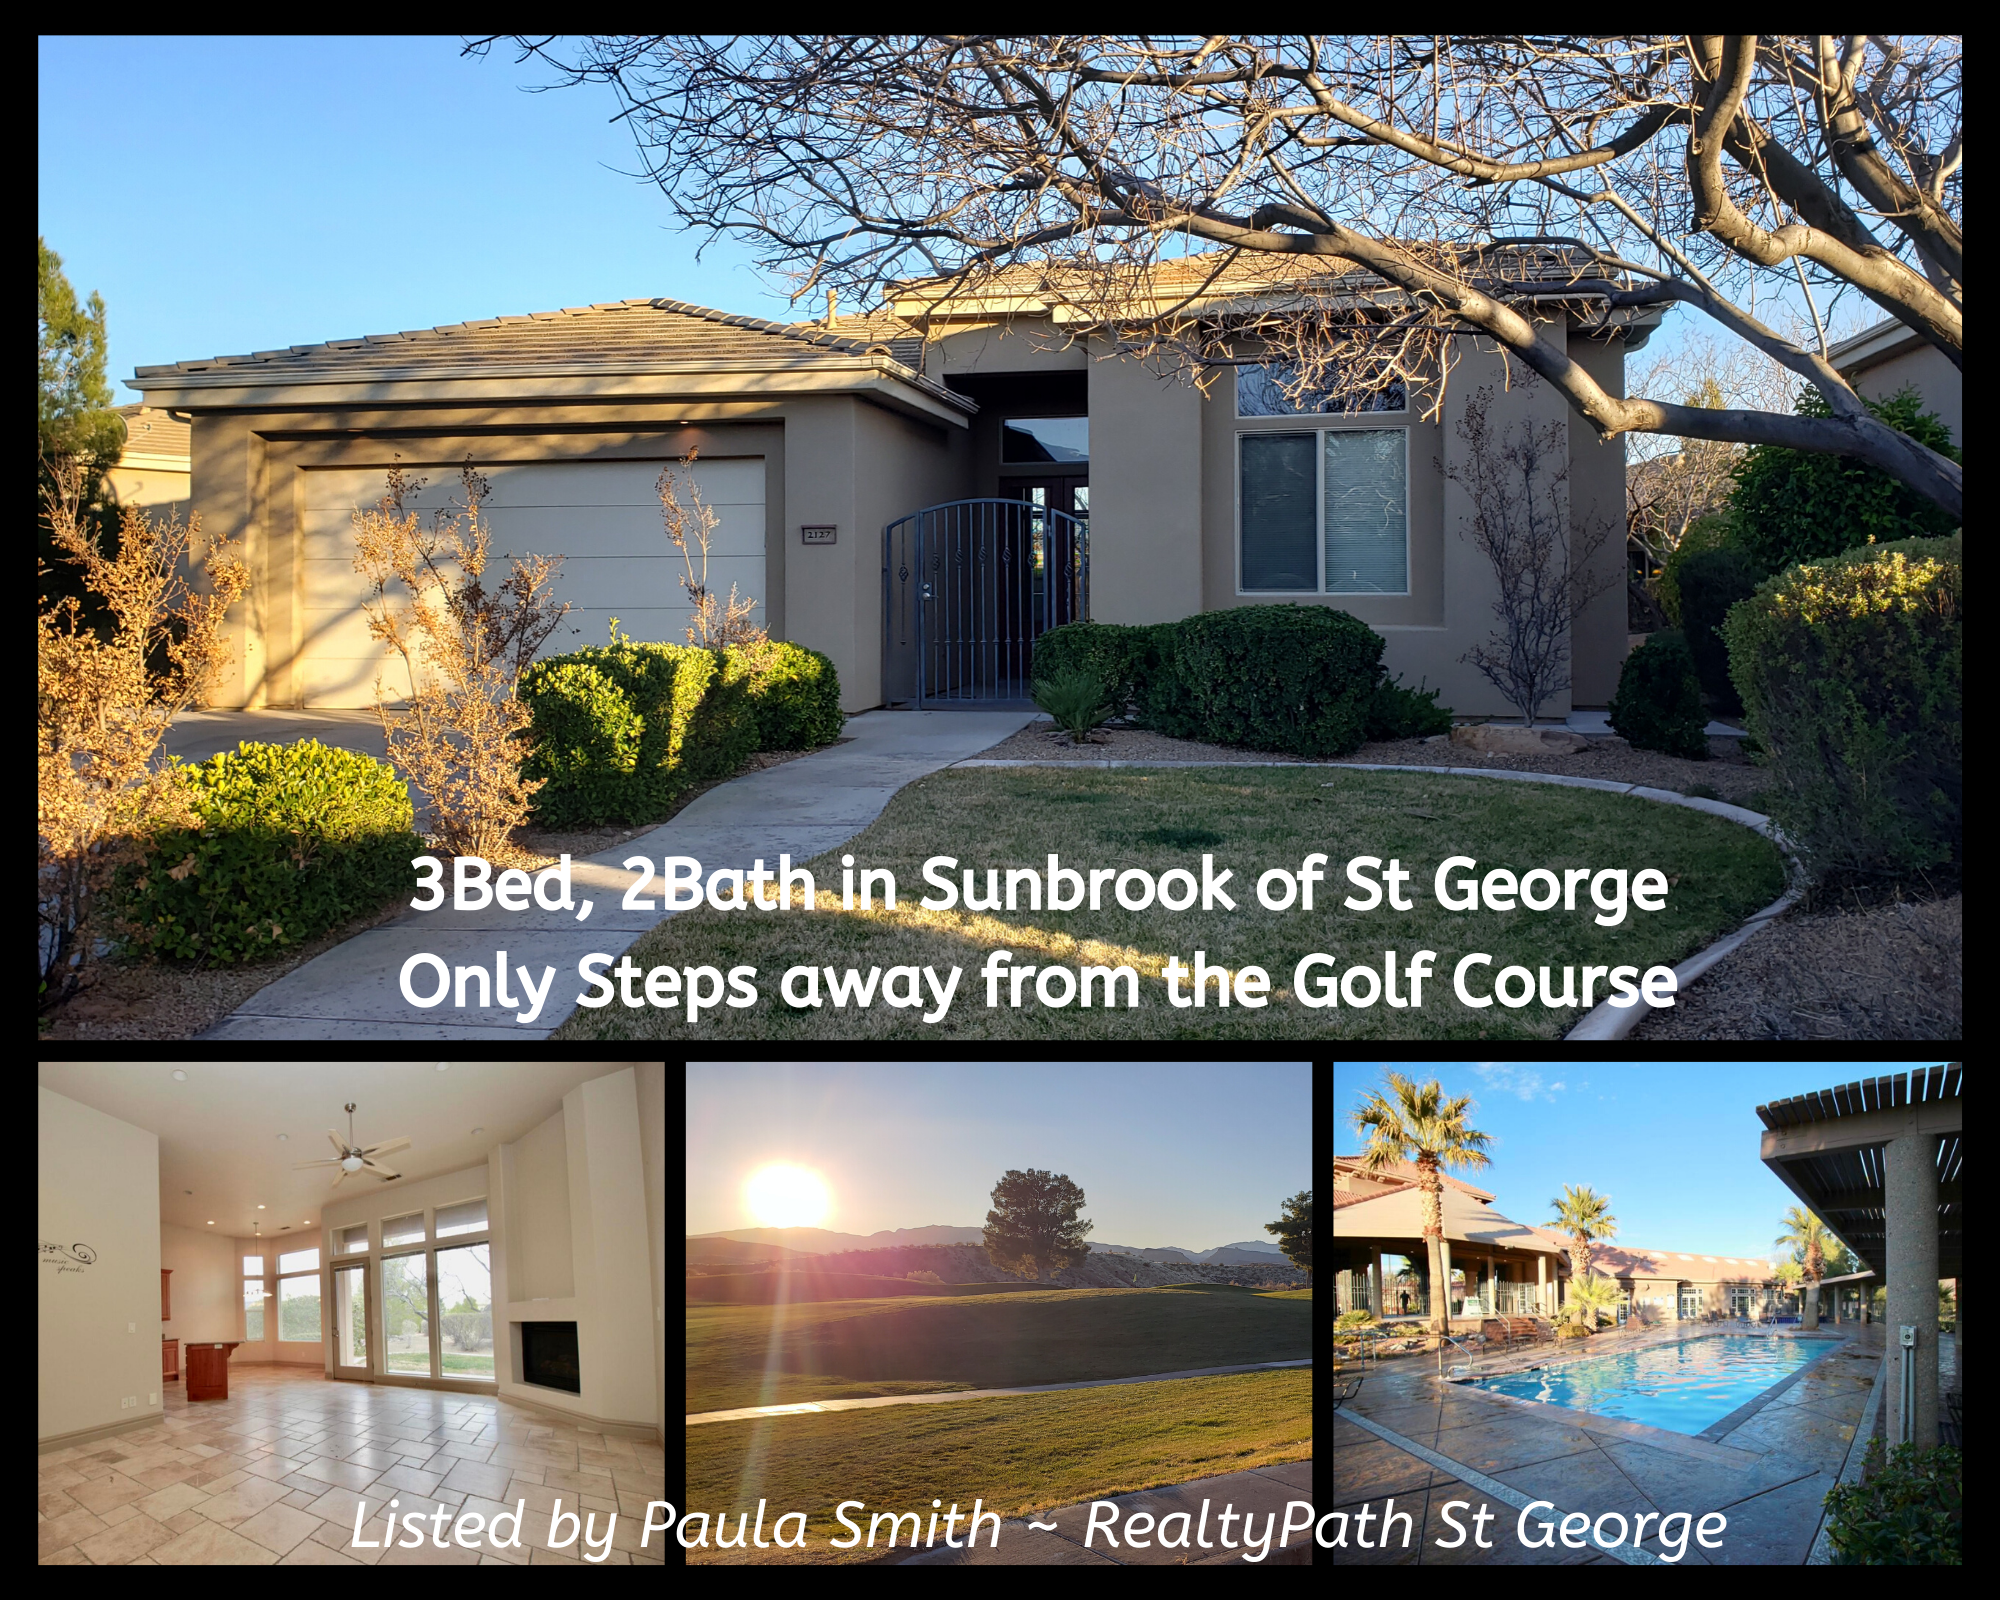 SunBrook Home For Sale St George